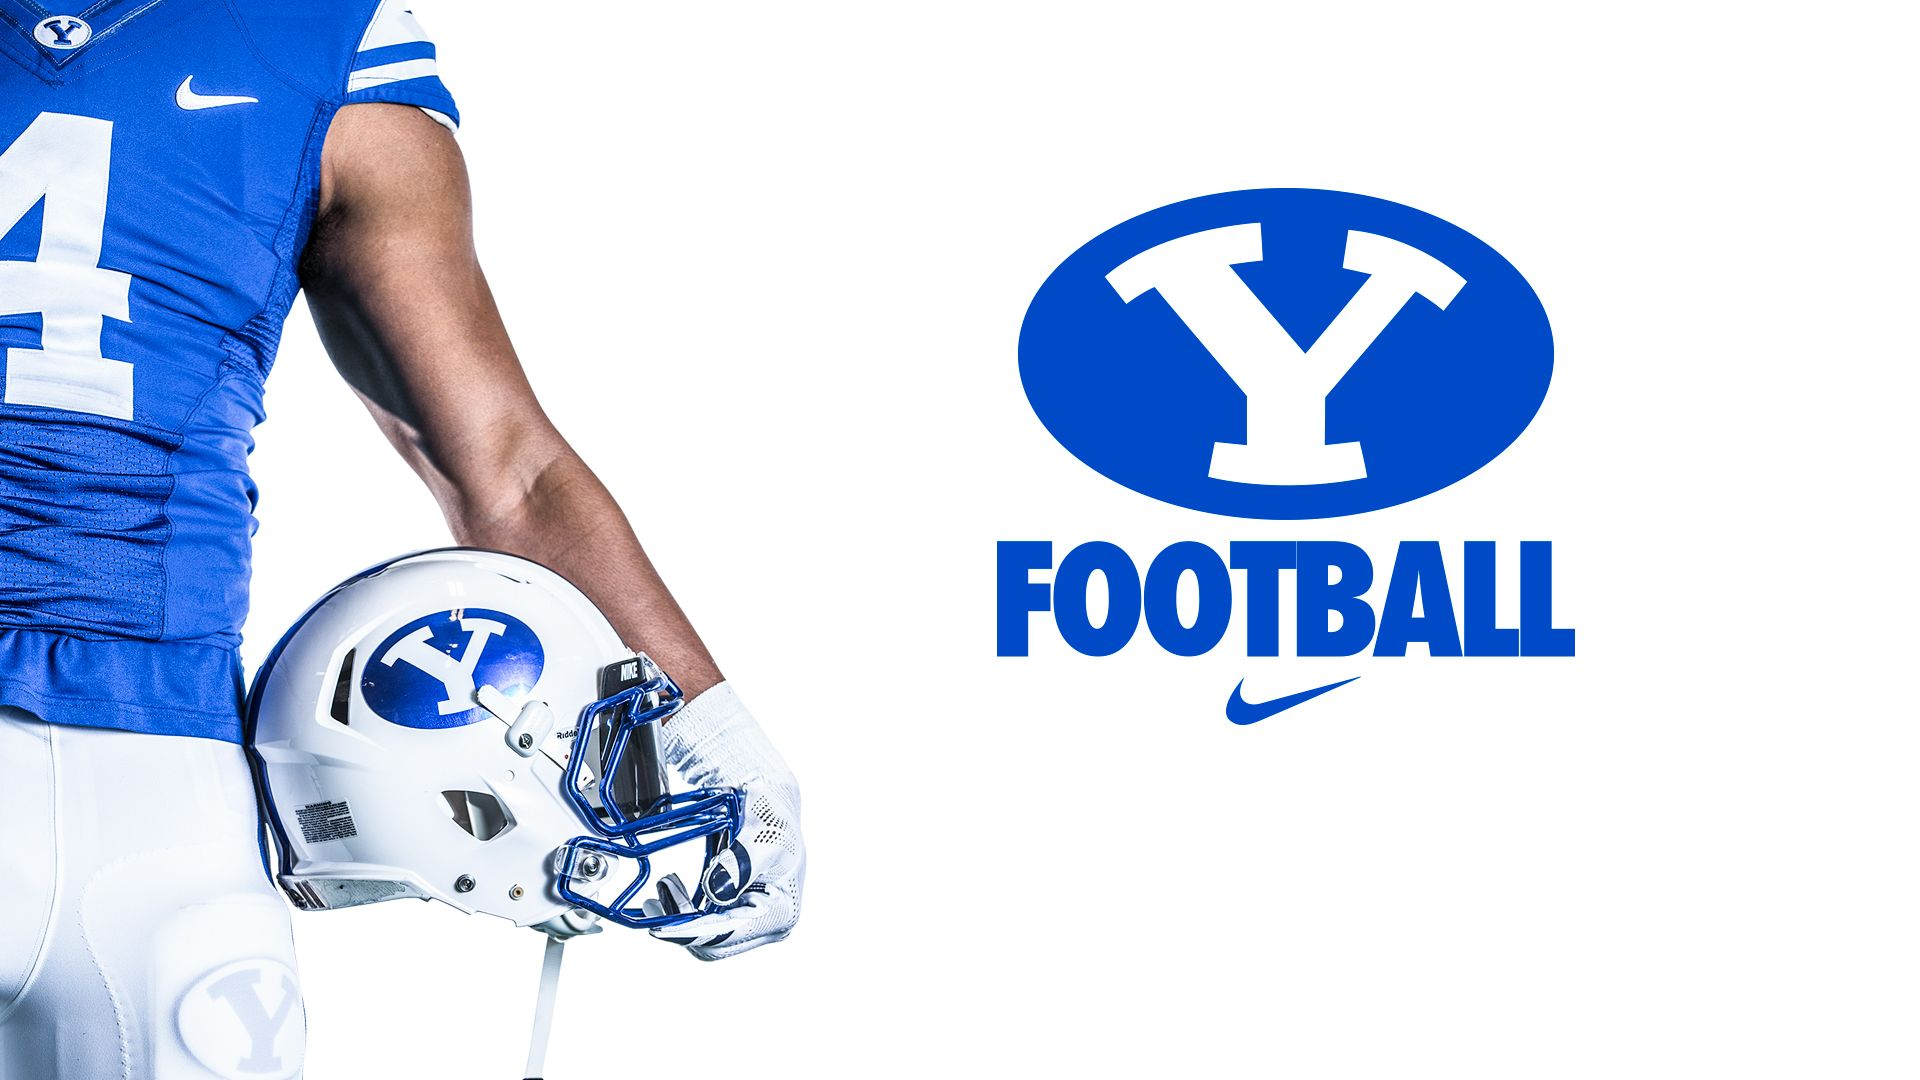 Pin By Spencer Richter On Byu All Things Byu Byu Football Football Logo Byu